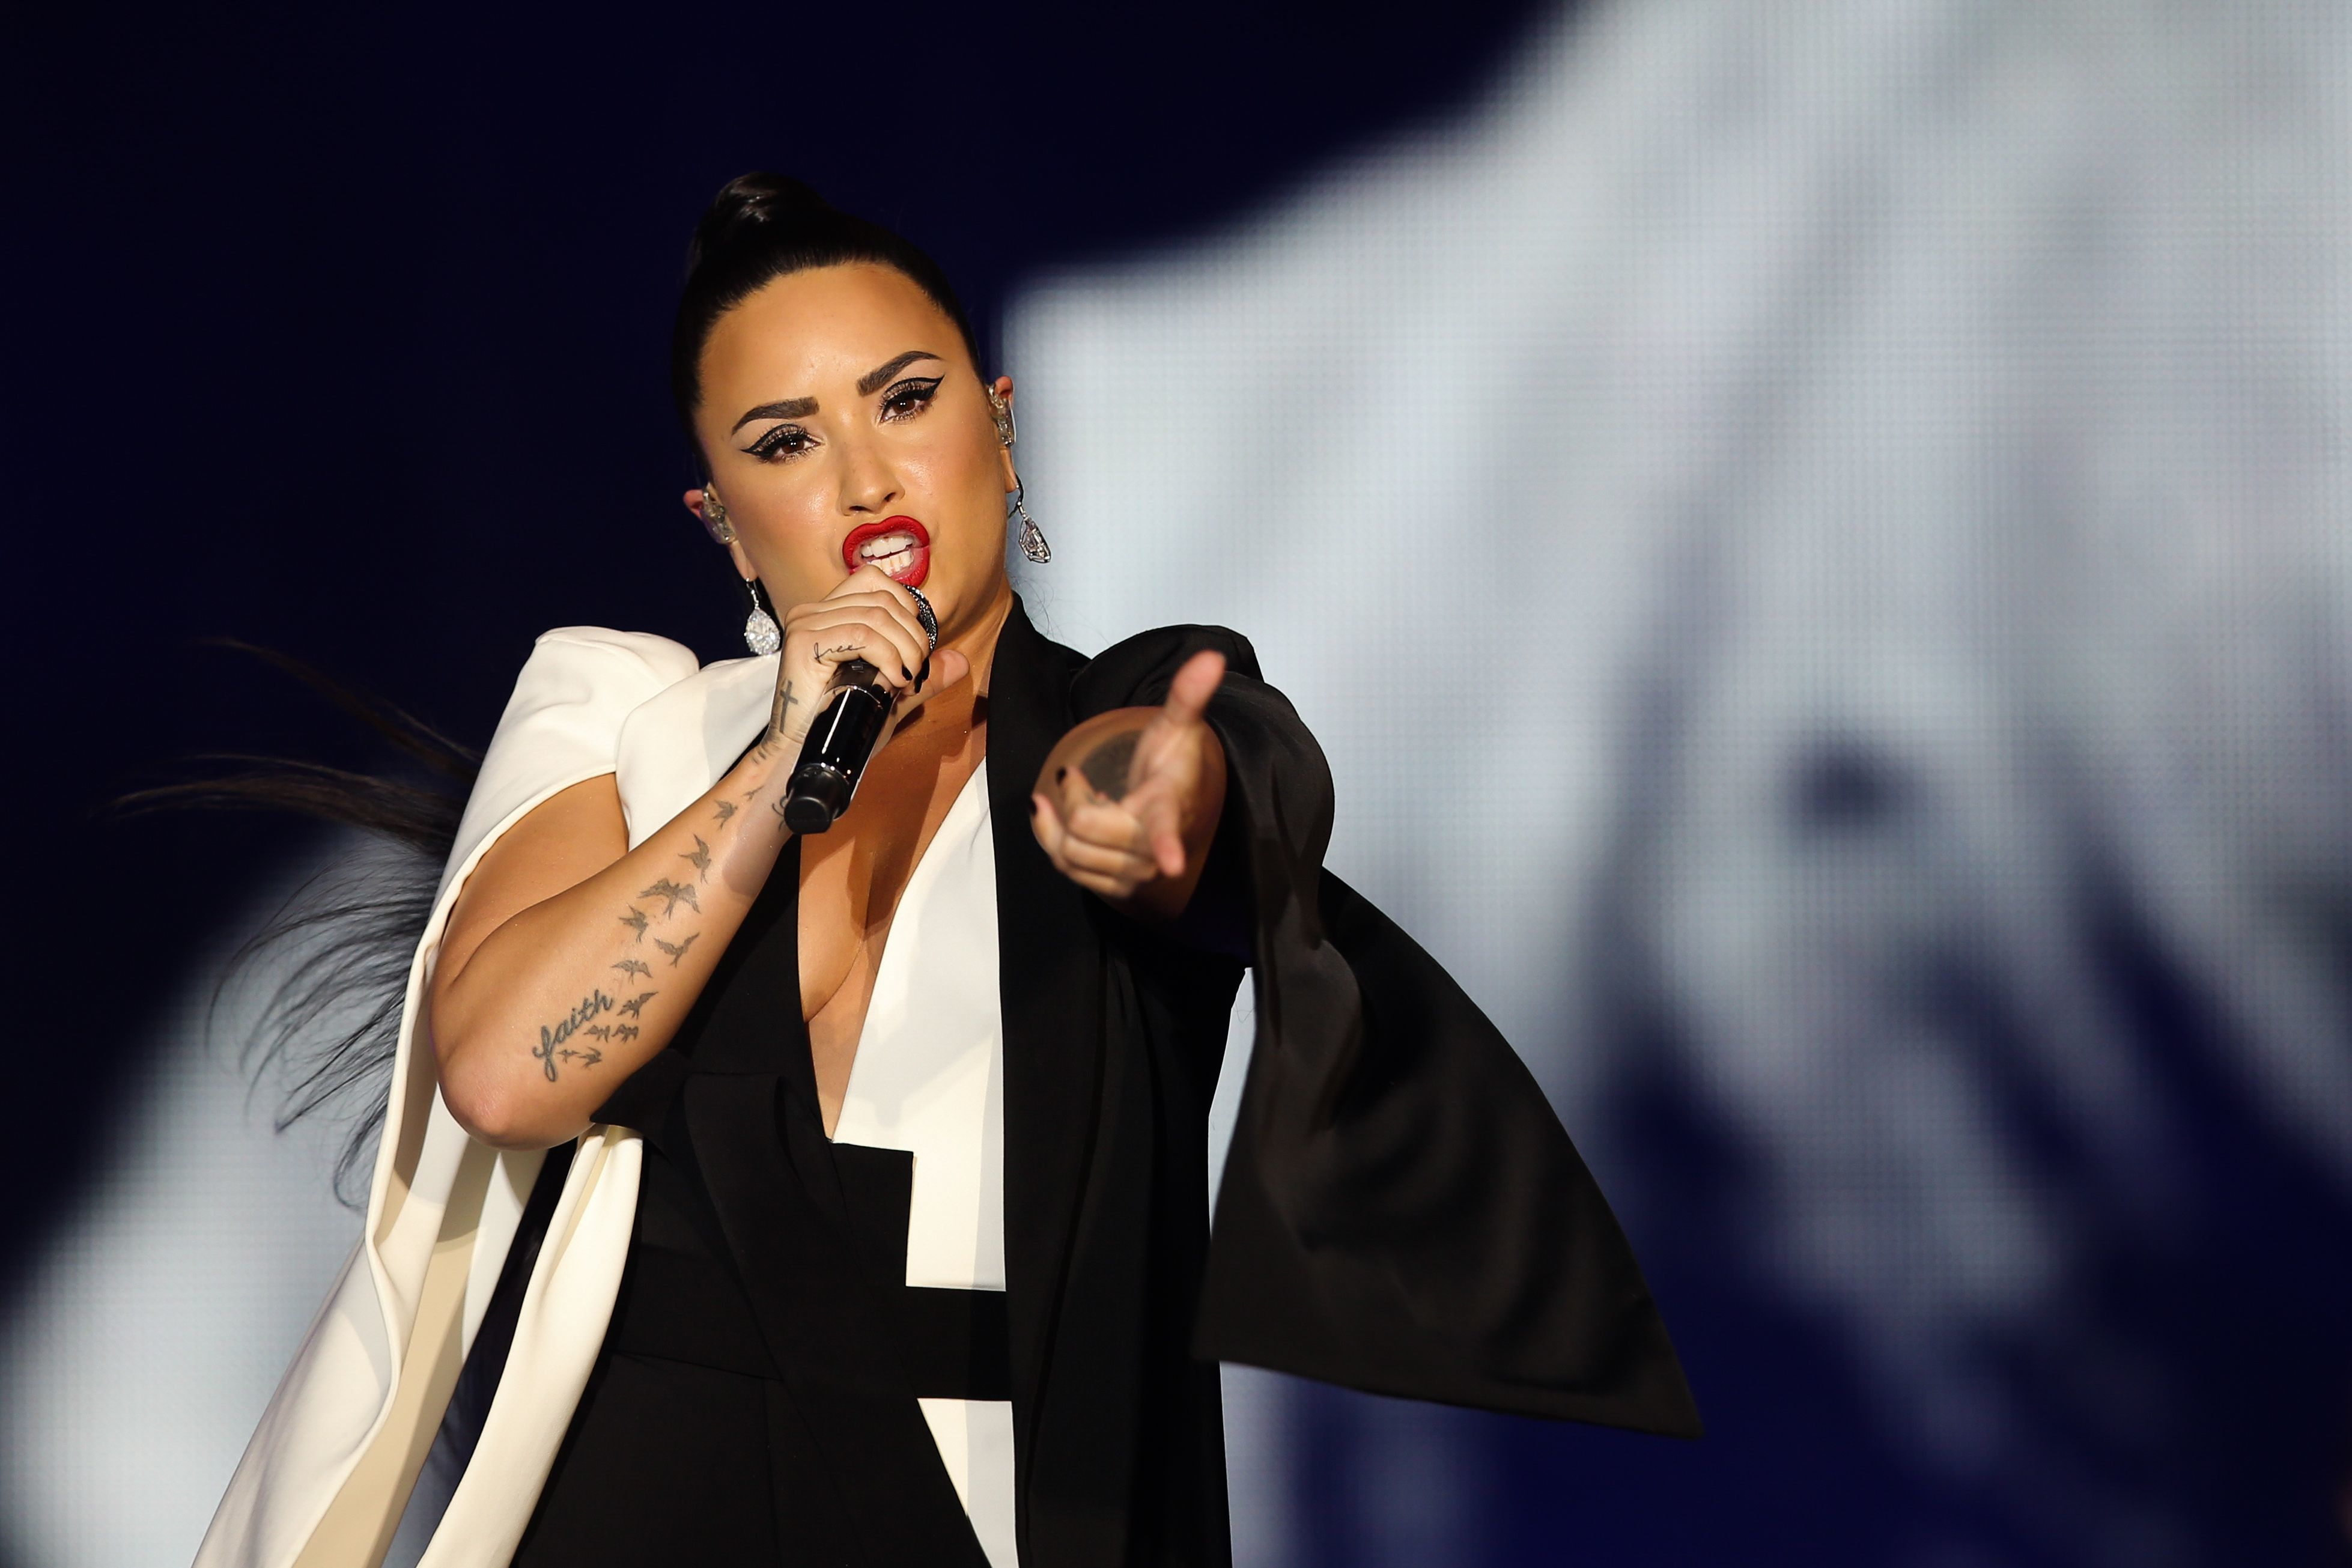 Demi Lovato performs at Rock in Rio Lisbon in Portugal on June 24, 2018.